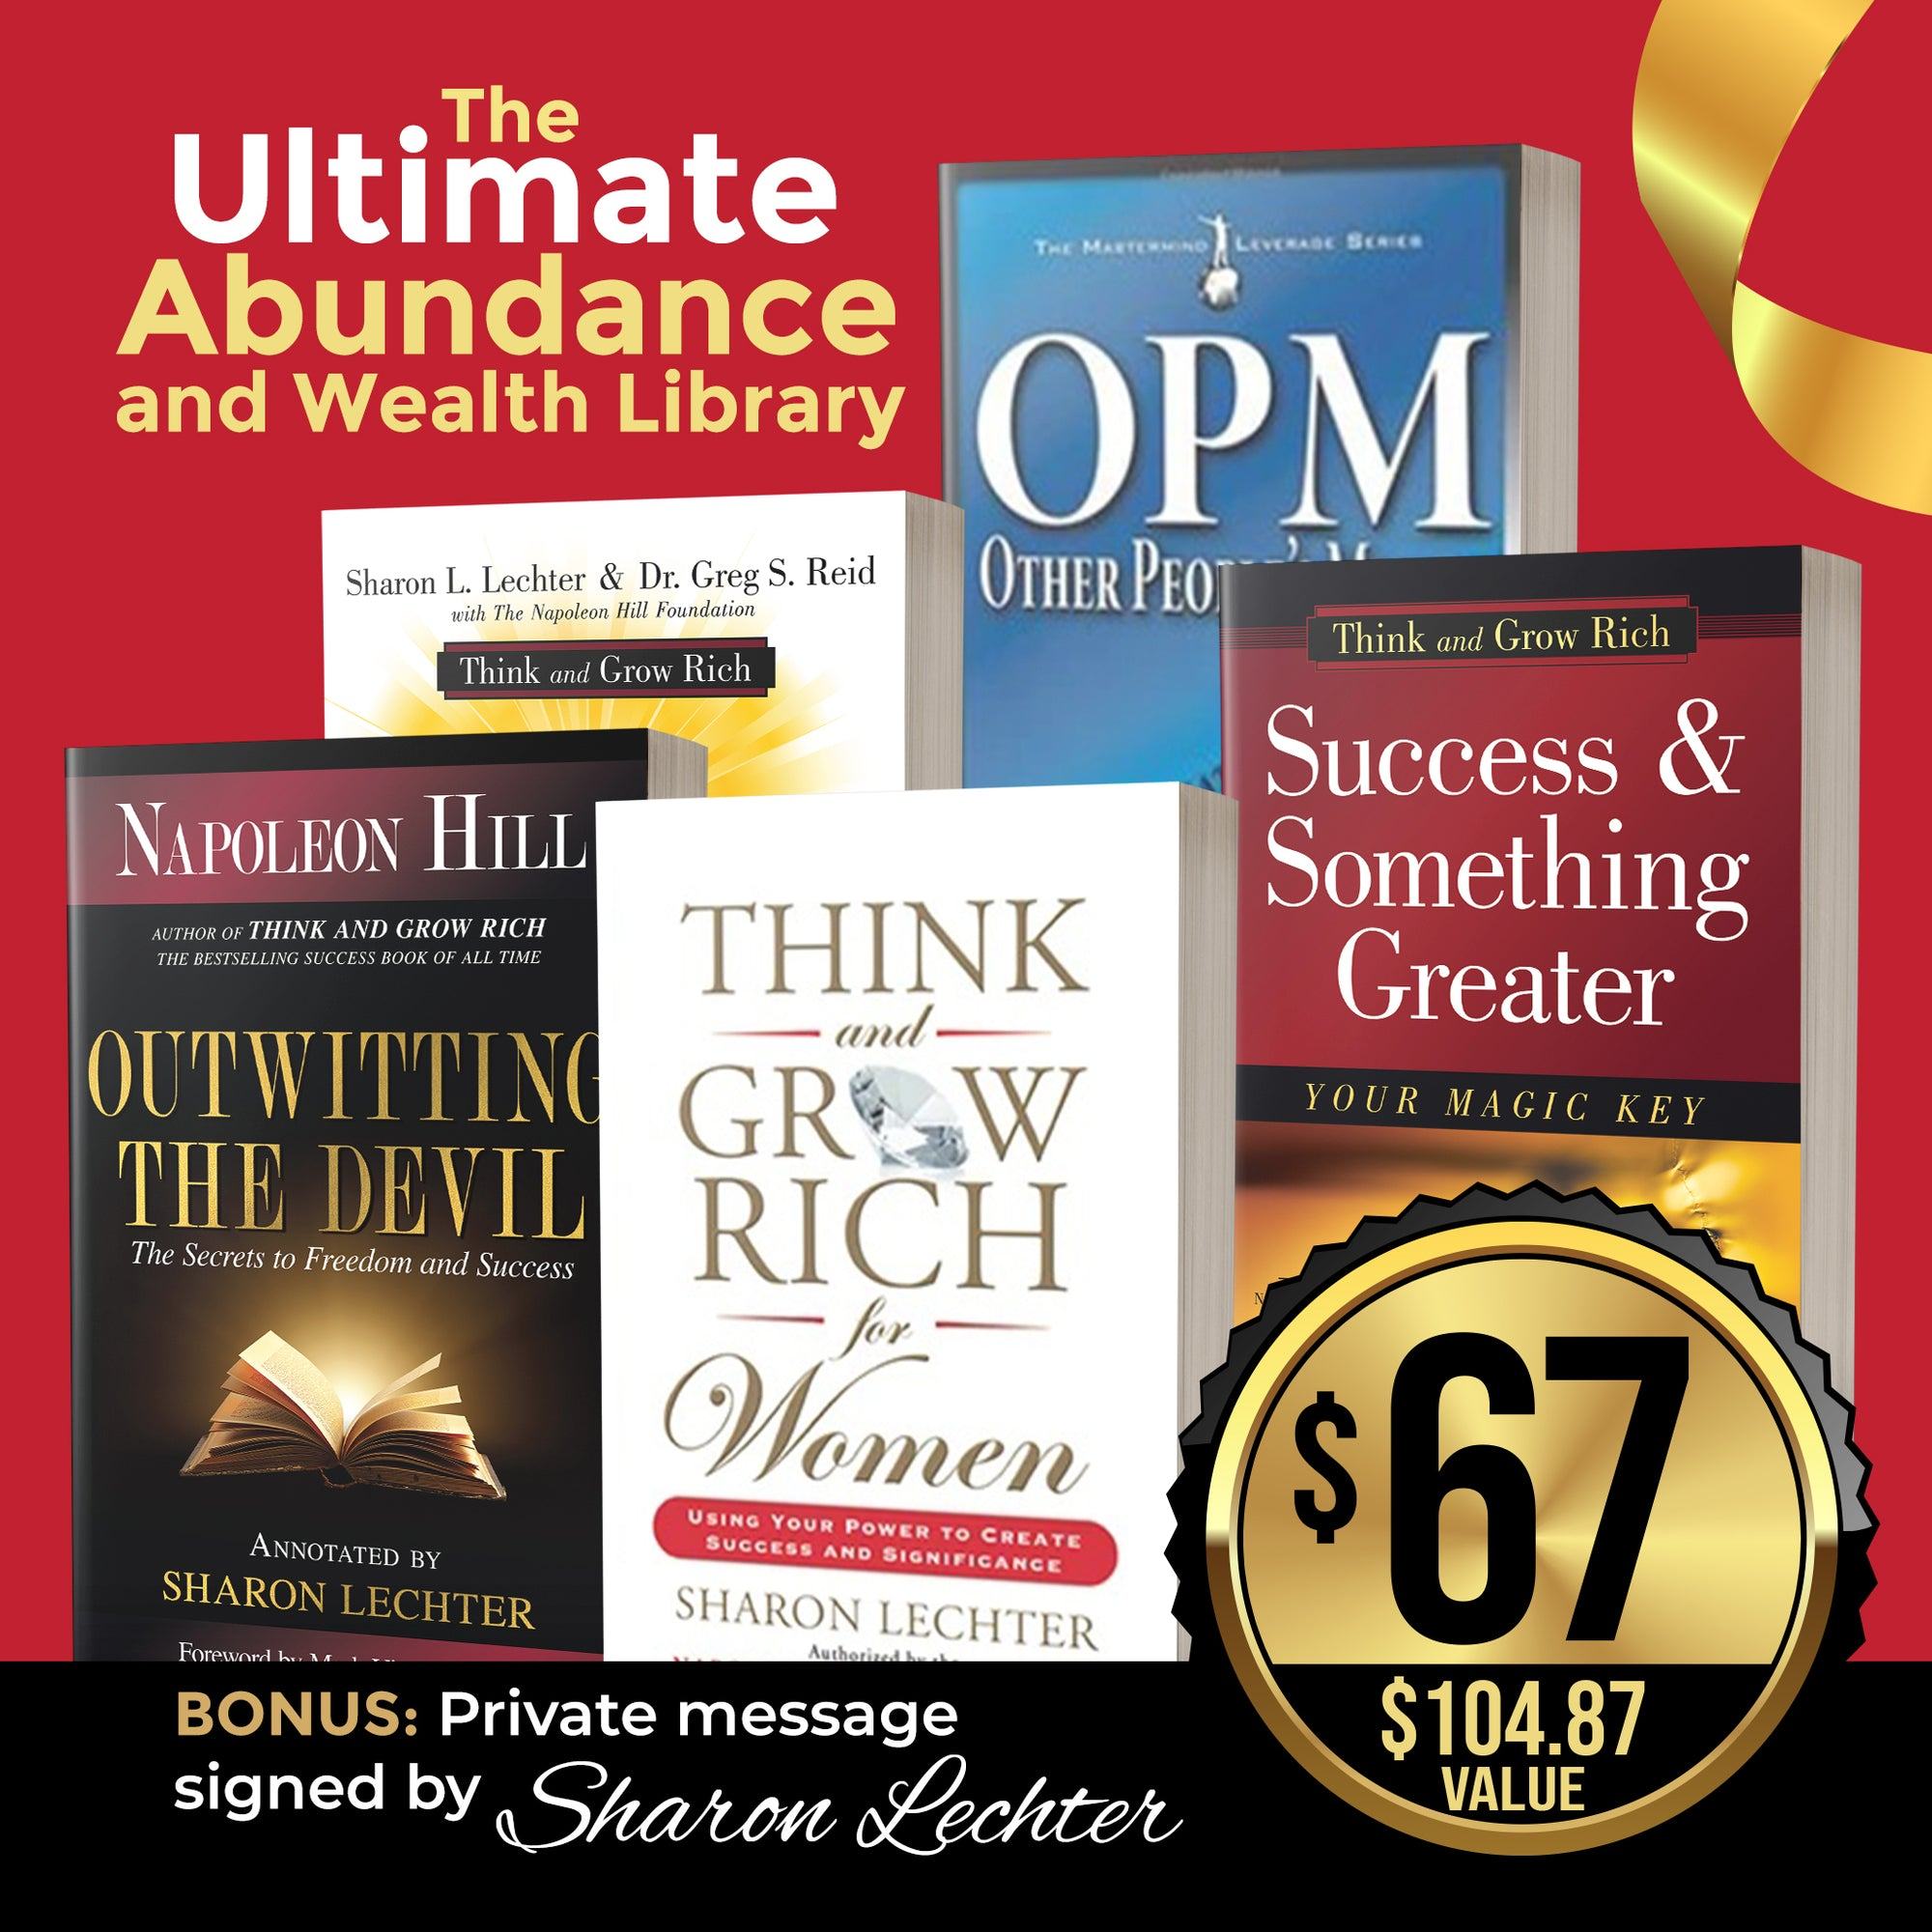 The Ultimate Abundance and Wealth Library